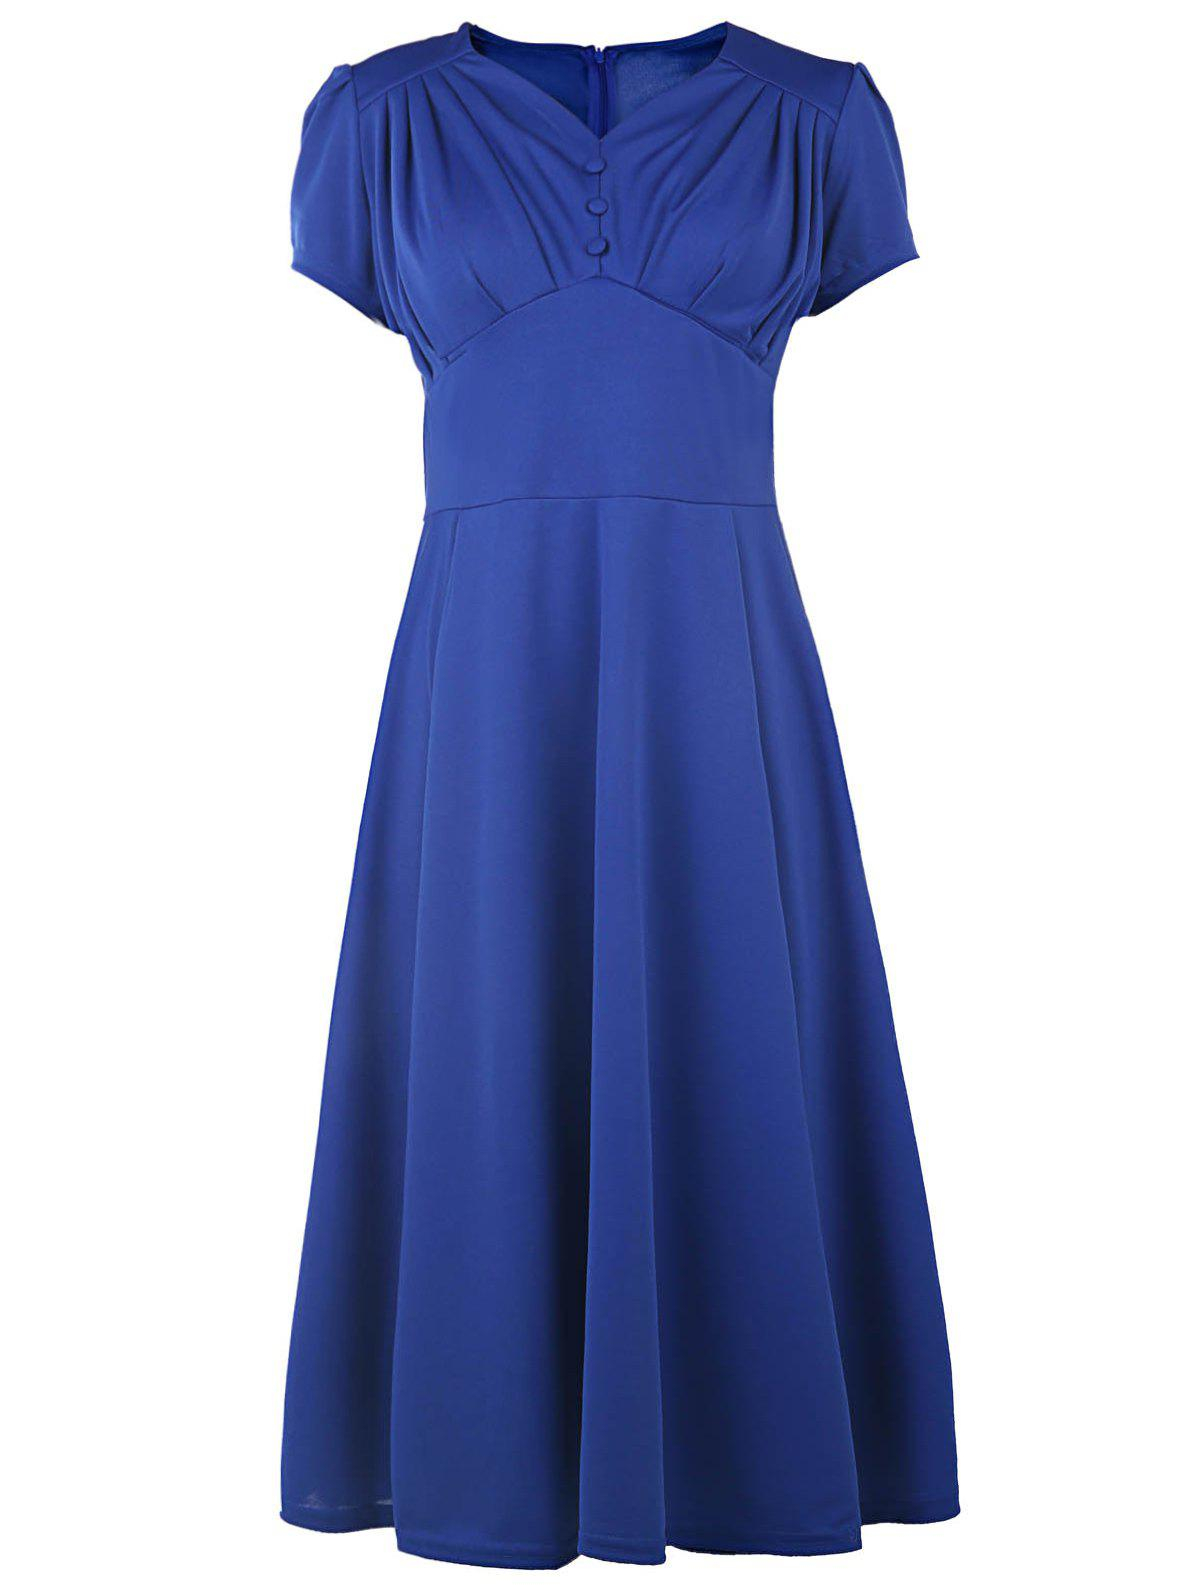 Chic Short Sleeve V-Neck Ruched Solid Color Women's Dress - BLUE M